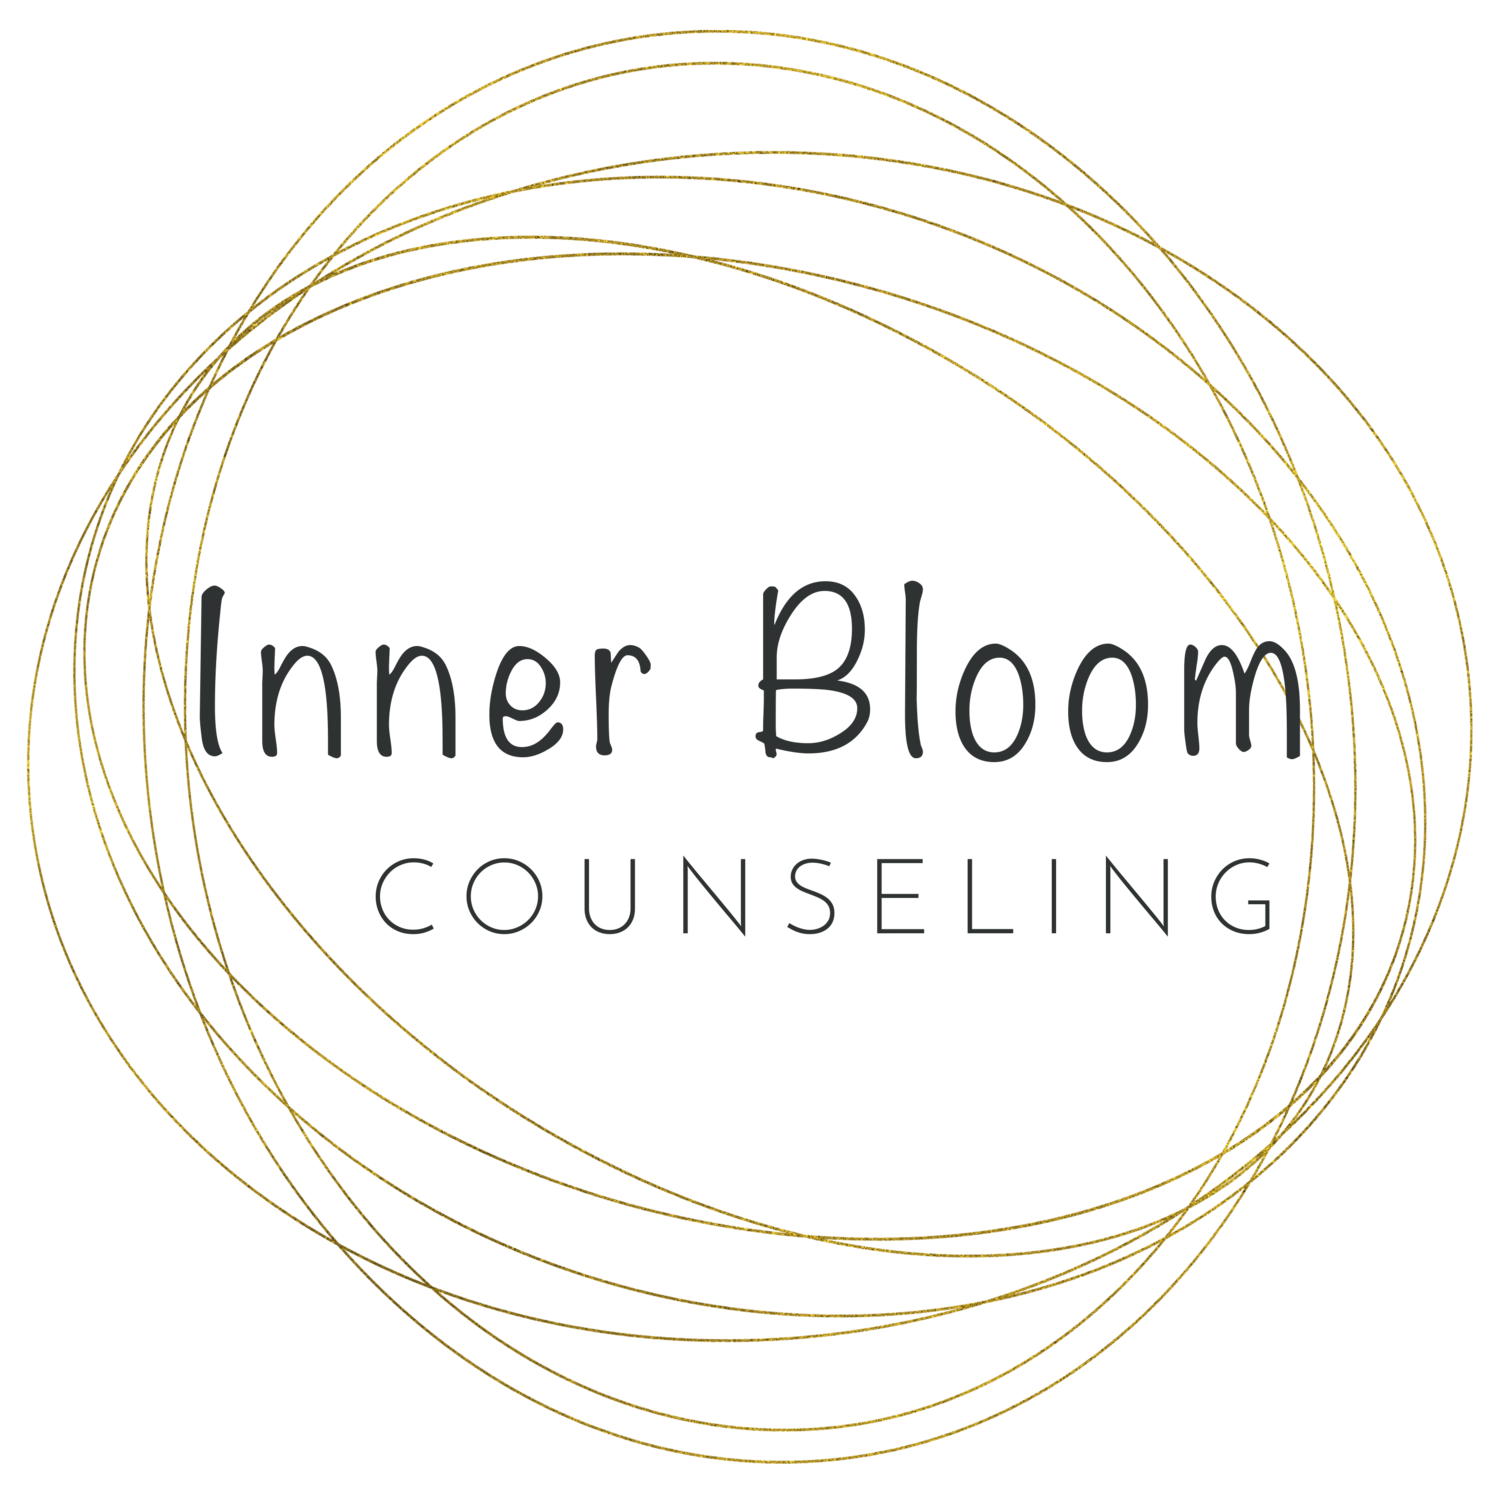 Inner Bloom Counseling | Jessica Wallner, LCPC-c | Counselor in Biddeford, Maine